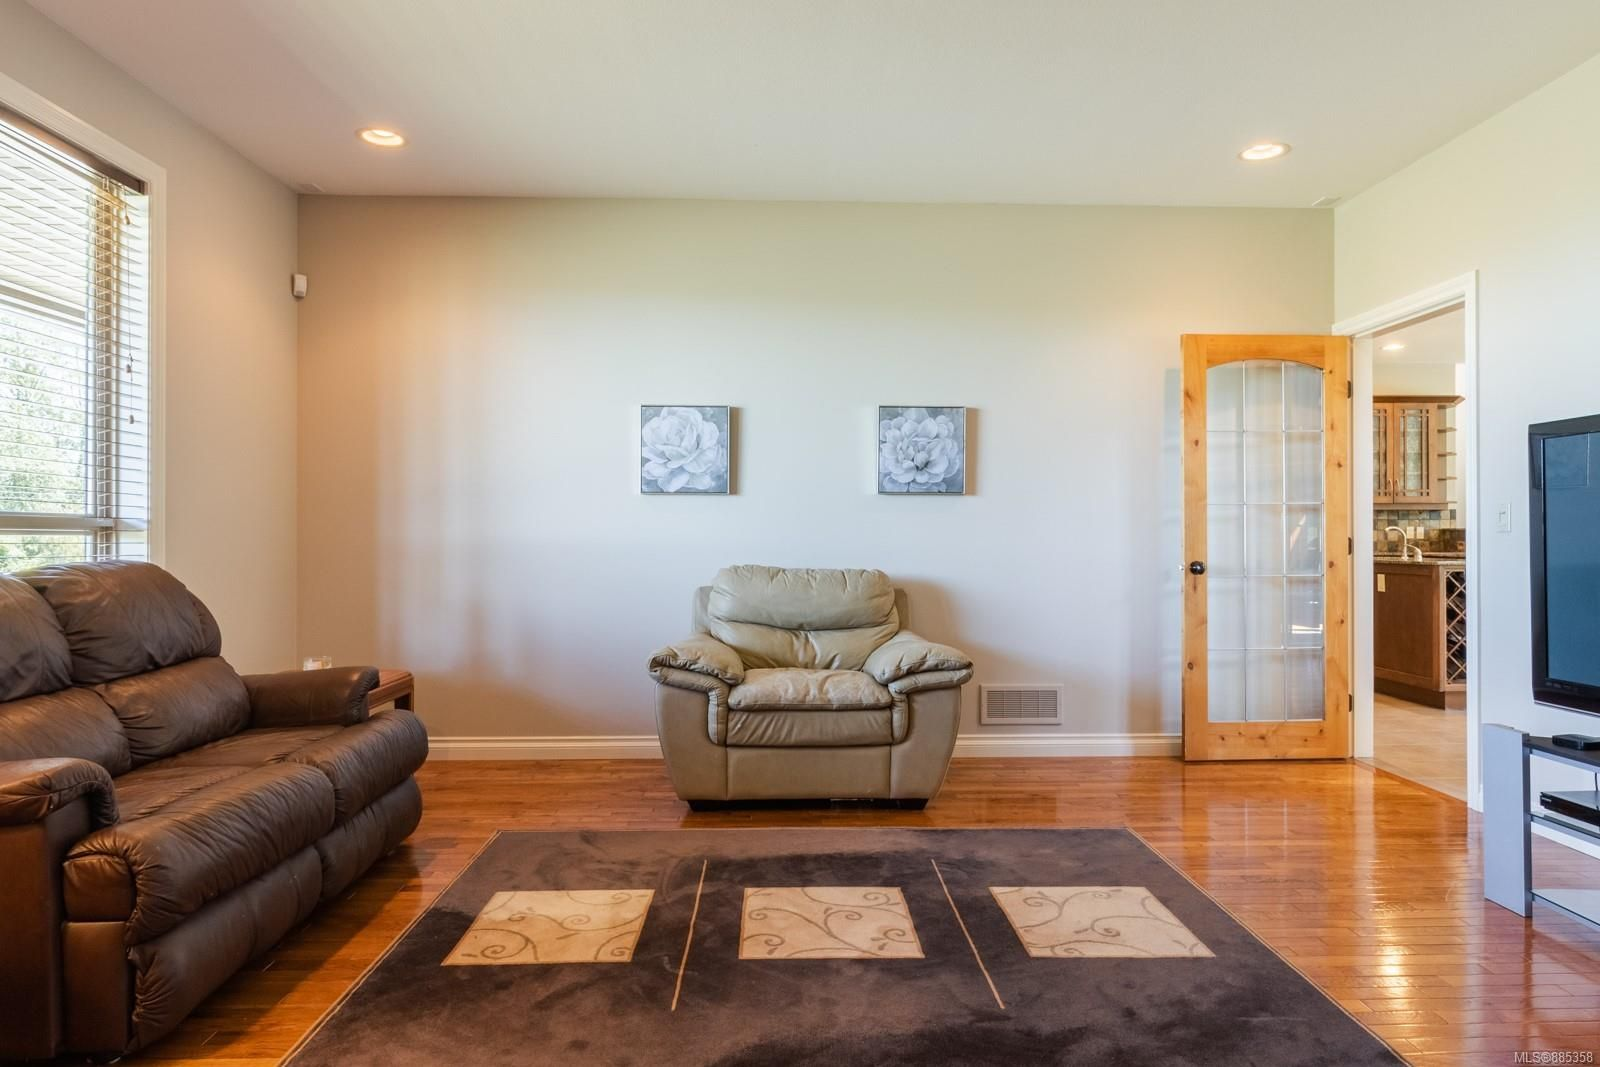 Photo 25: Photos: 2850 Peters Rd in : PQ Qualicum Beach House for sale (Parksville/Qualicum)  : MLS®# 885358